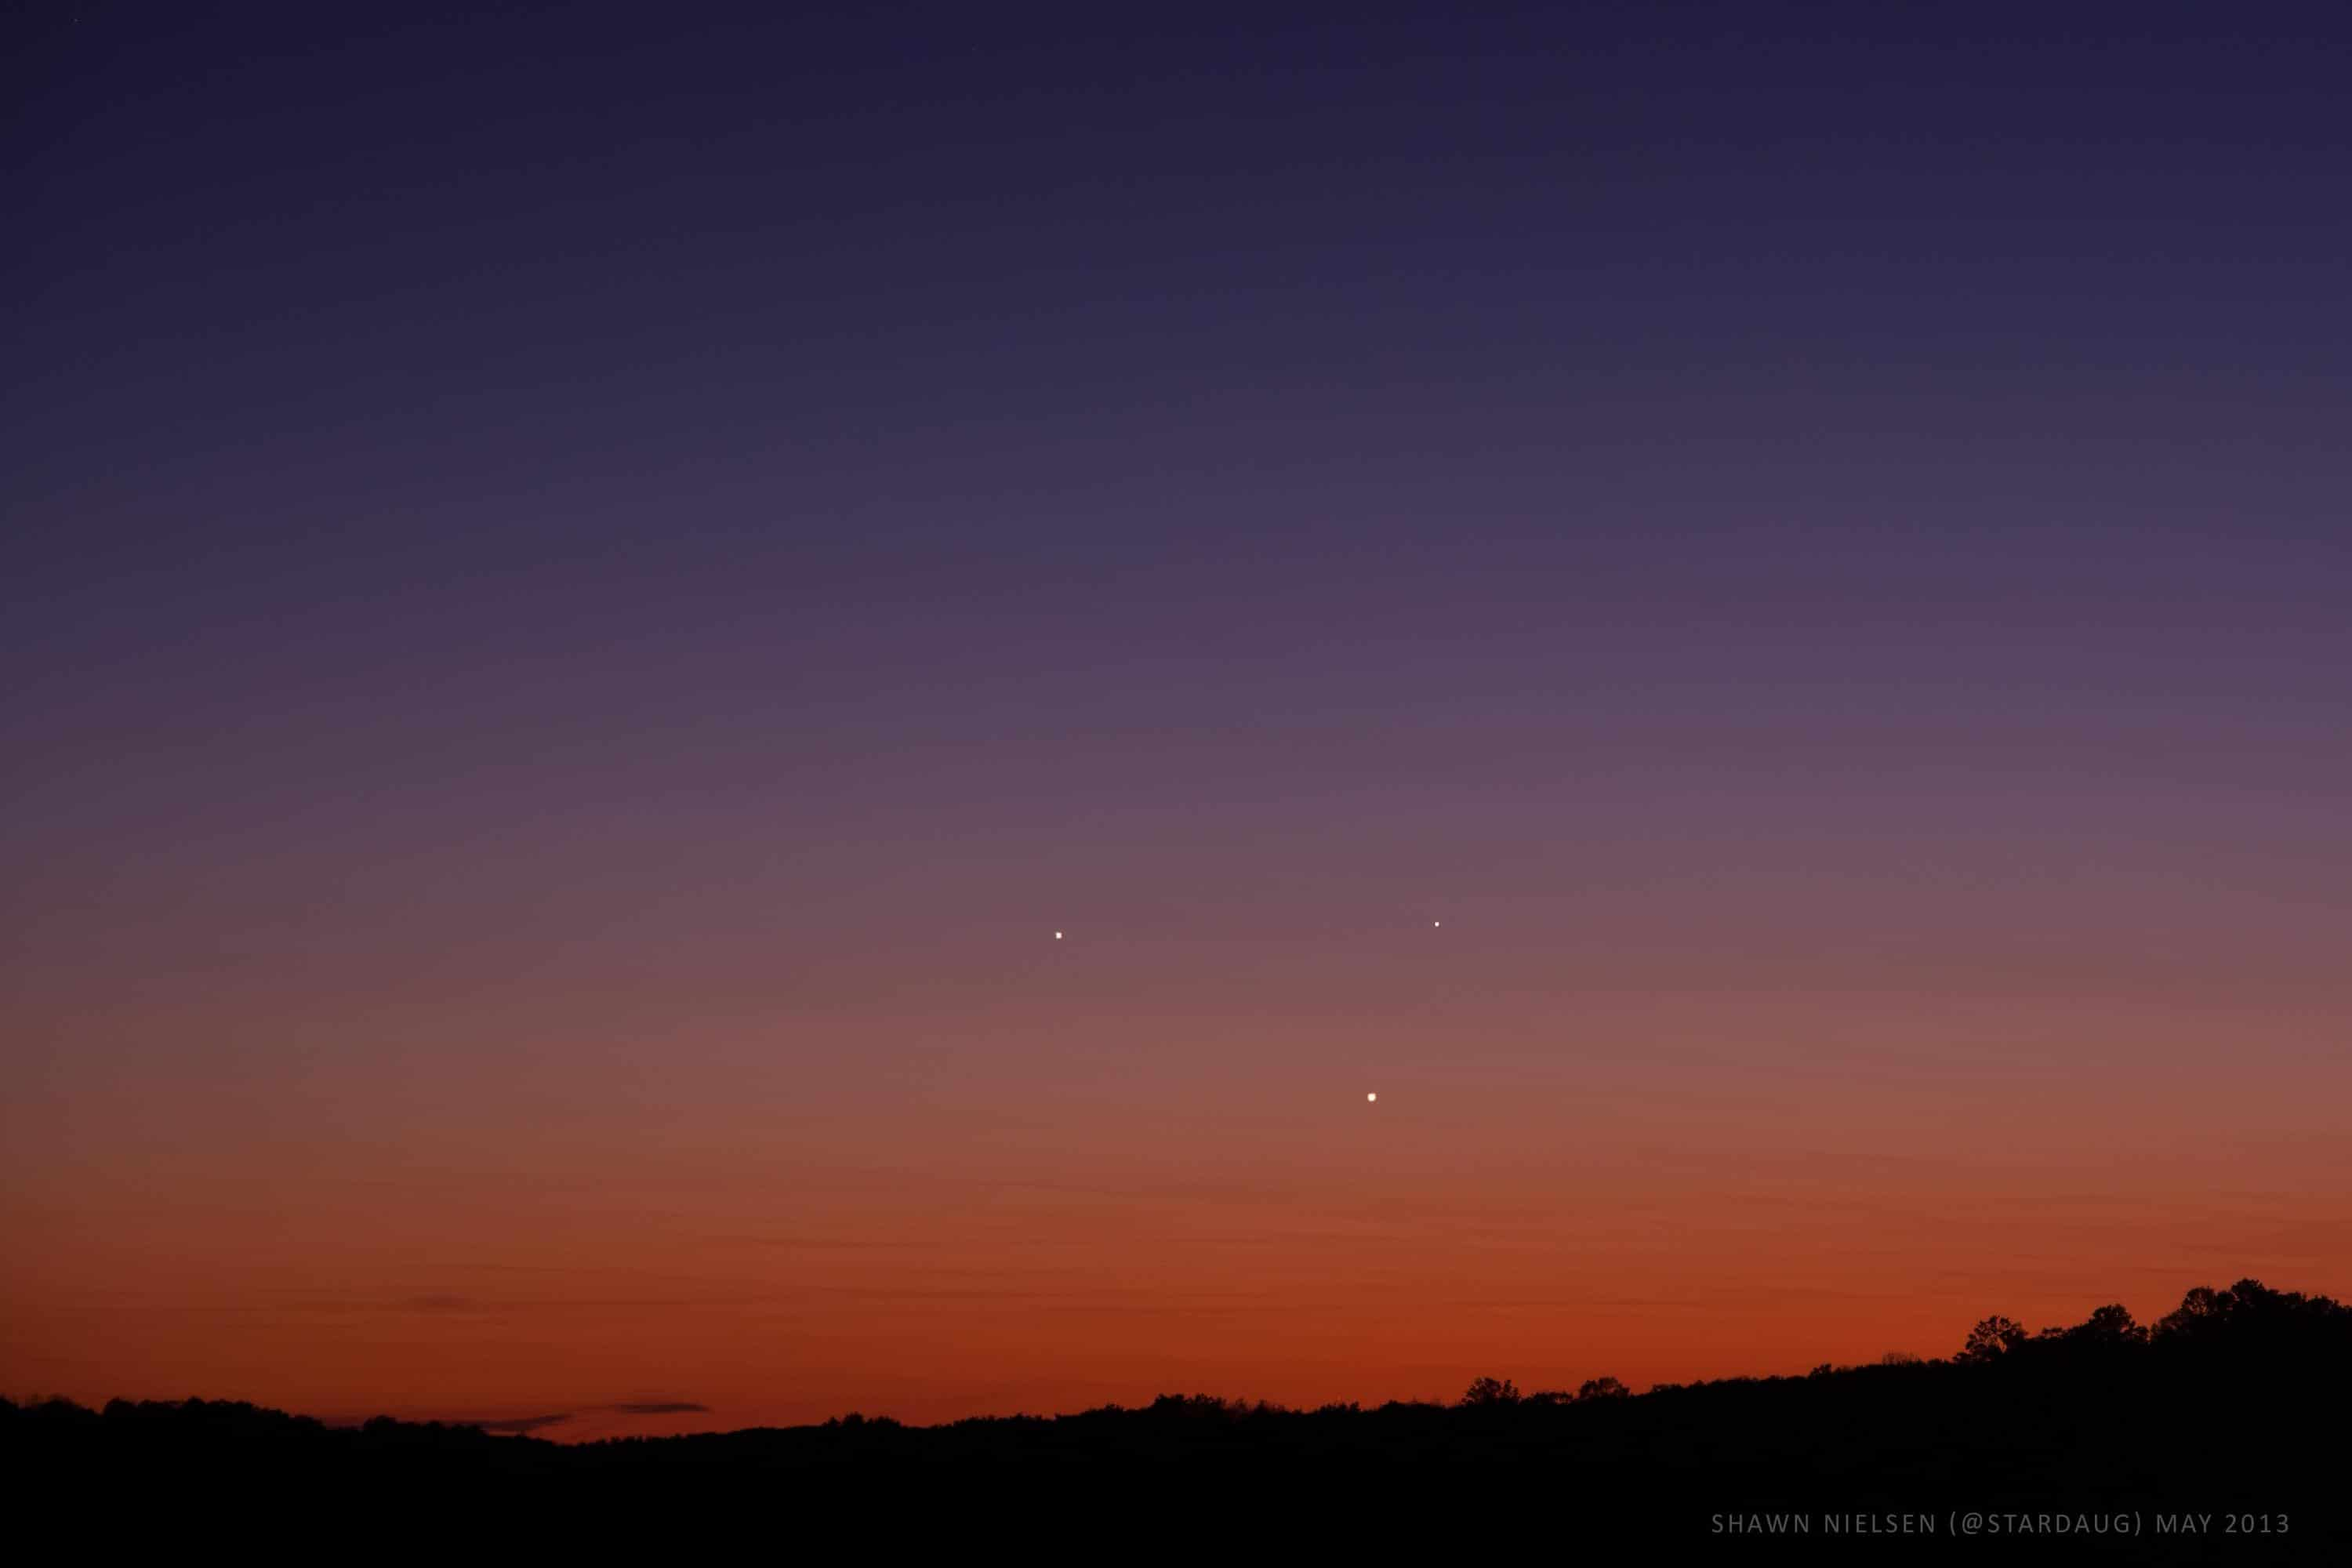 Jupiter, Venus and Mercury come together in the evening sky on May 25th, 2013. Shawn Nielsen